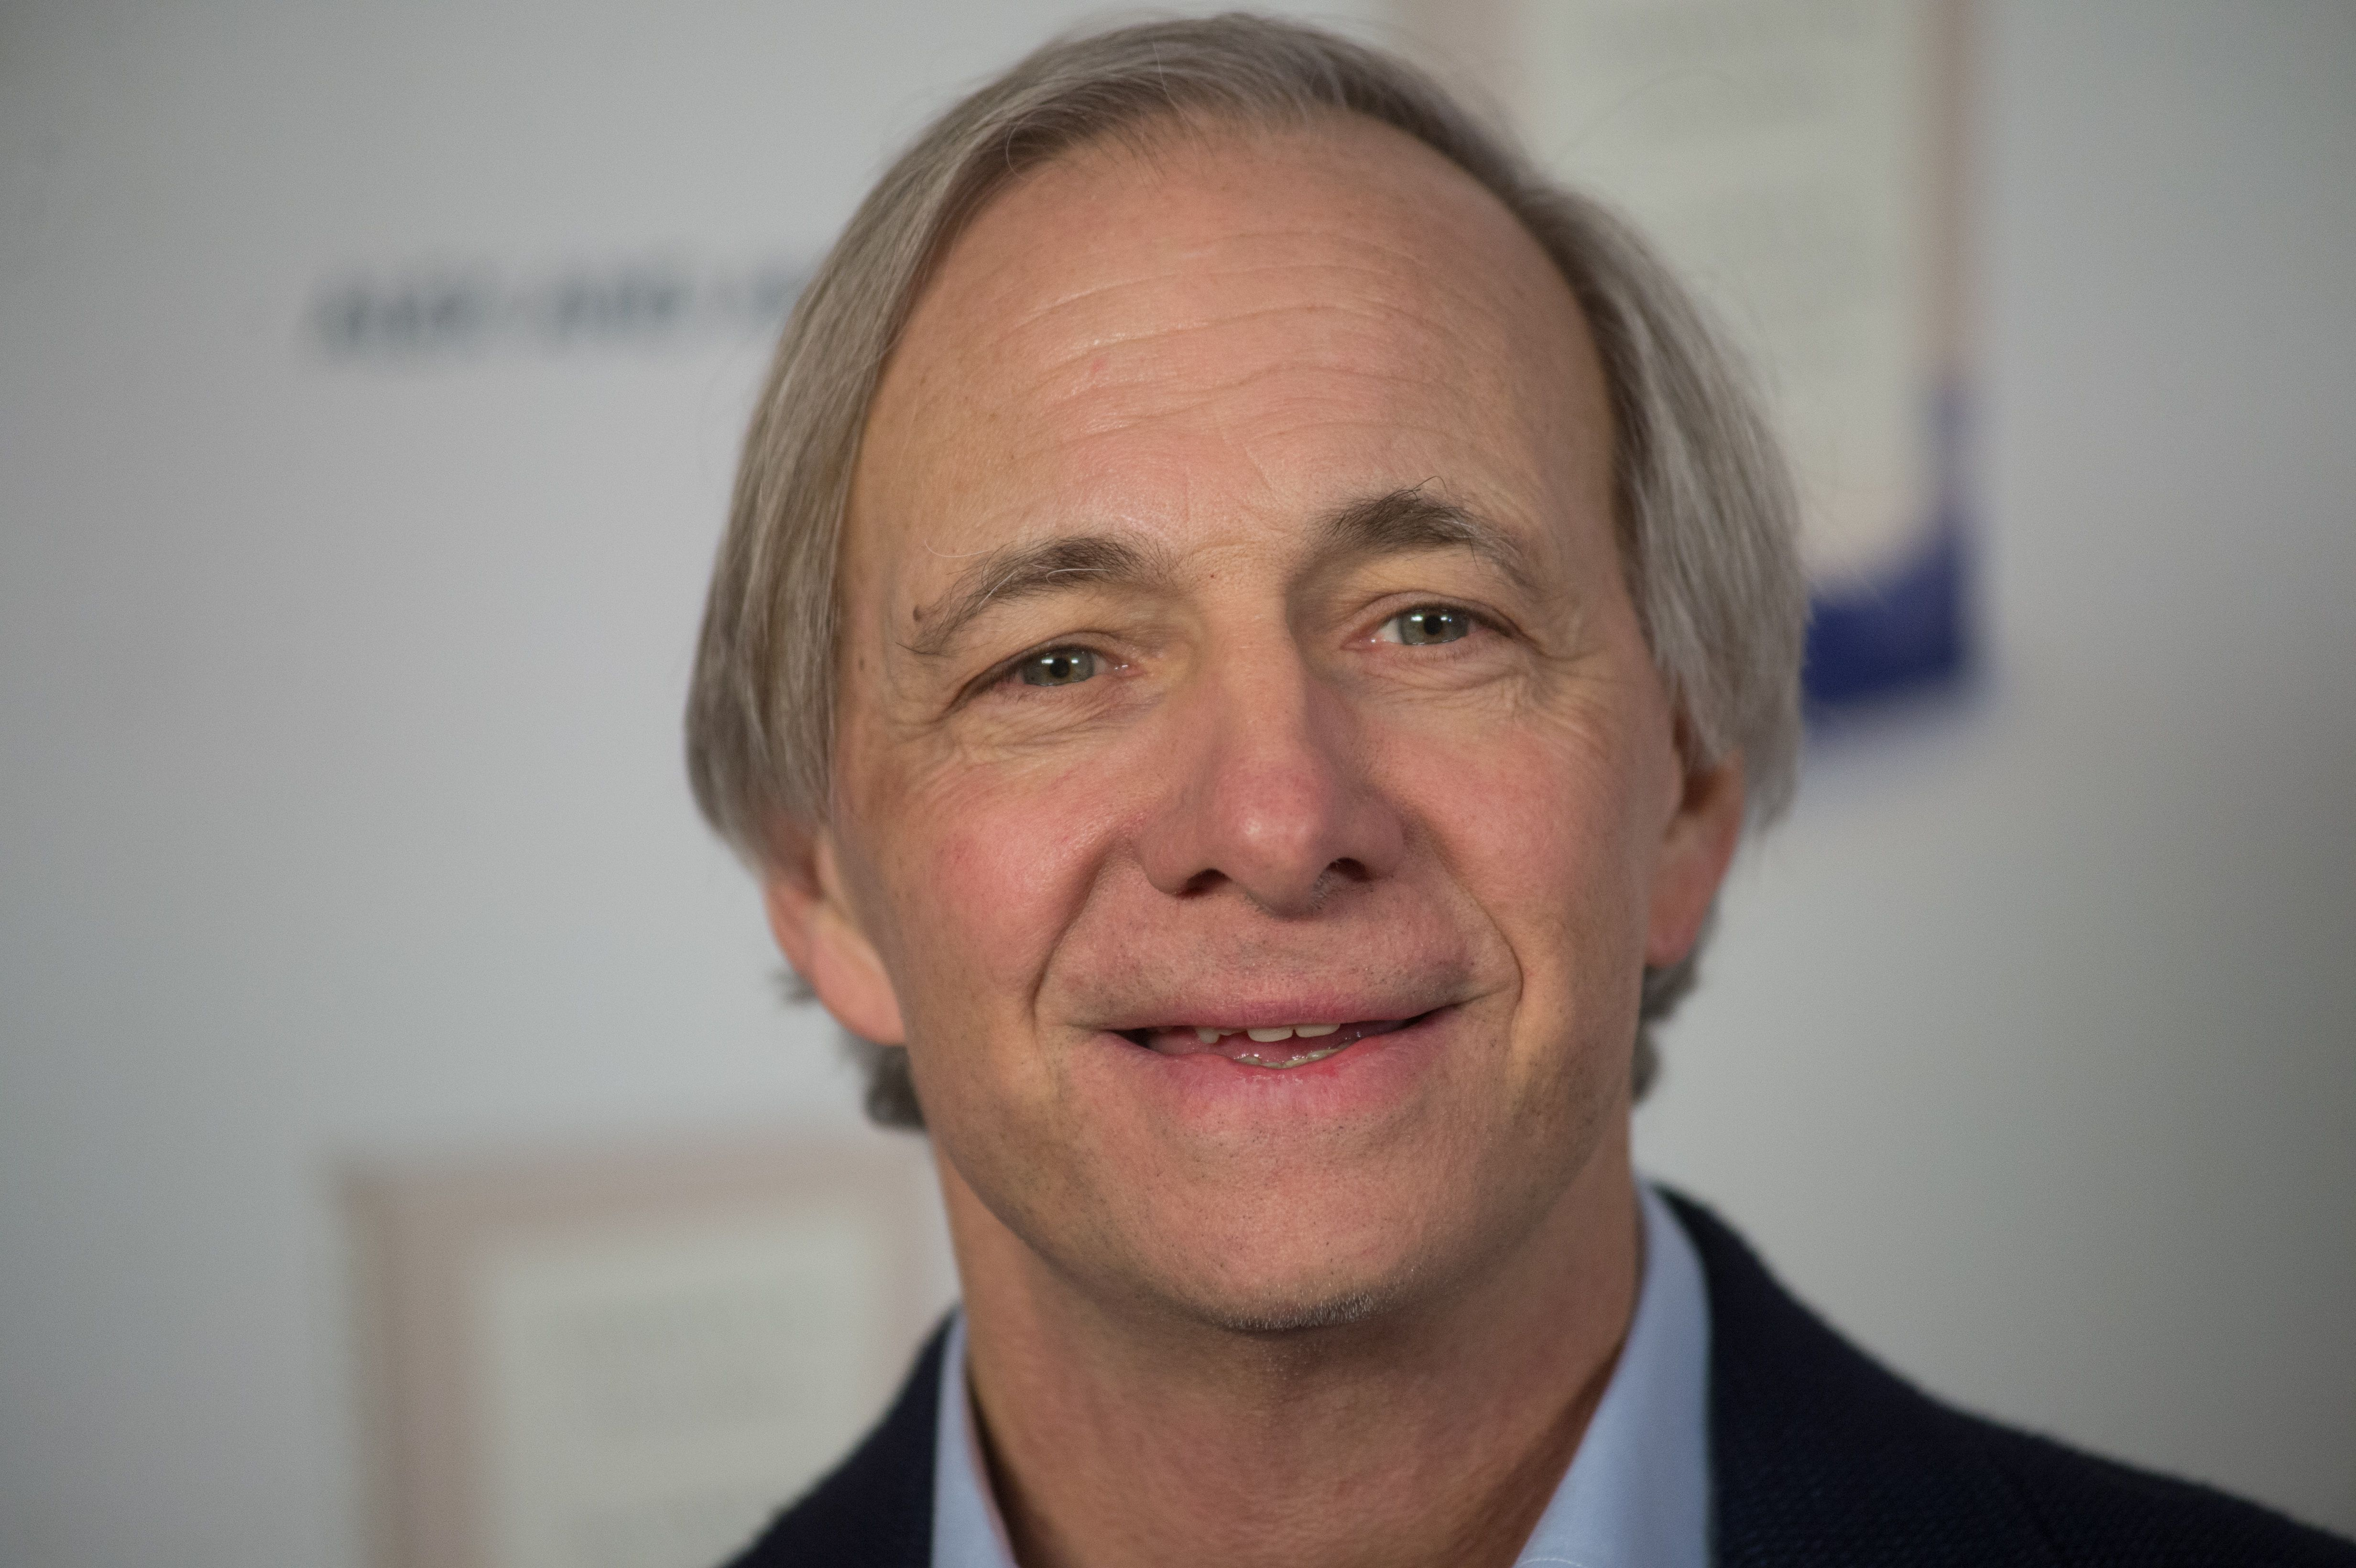 Ray Dalio in New York, New York, on Feb. 6, 2018.